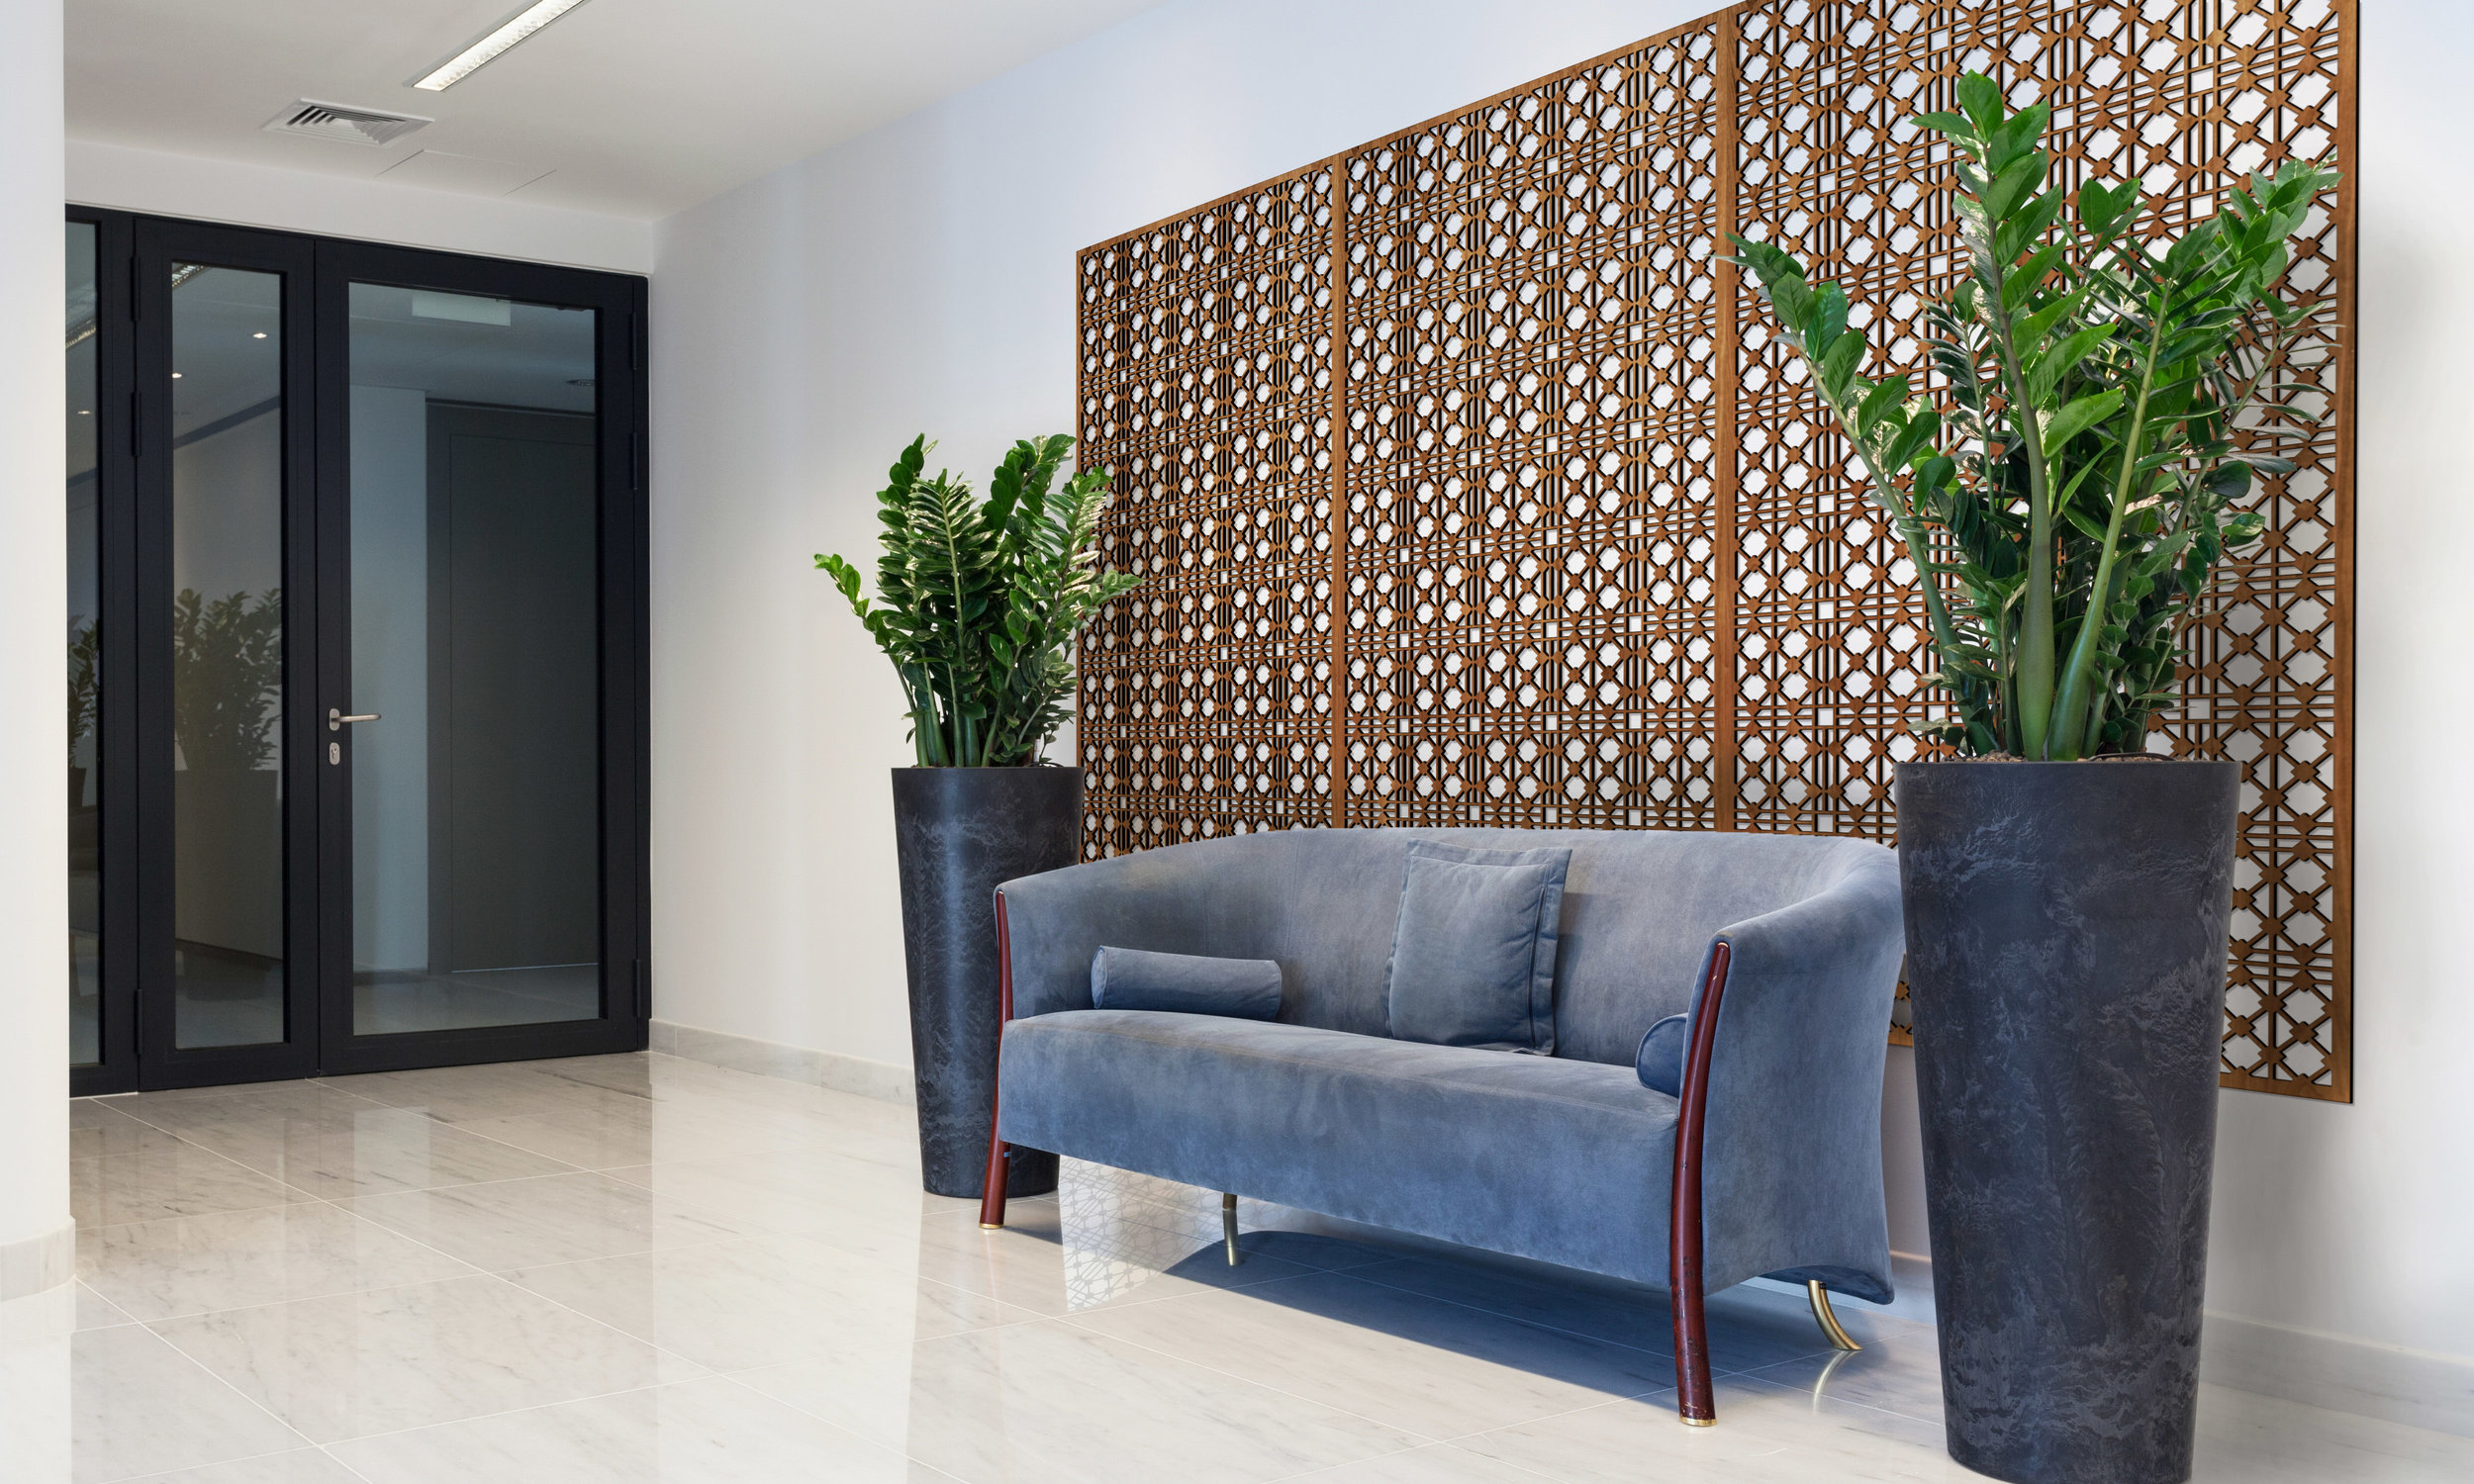 Installation Rendering A   Hardt Grille decorative office wall panel - shown in Cherry